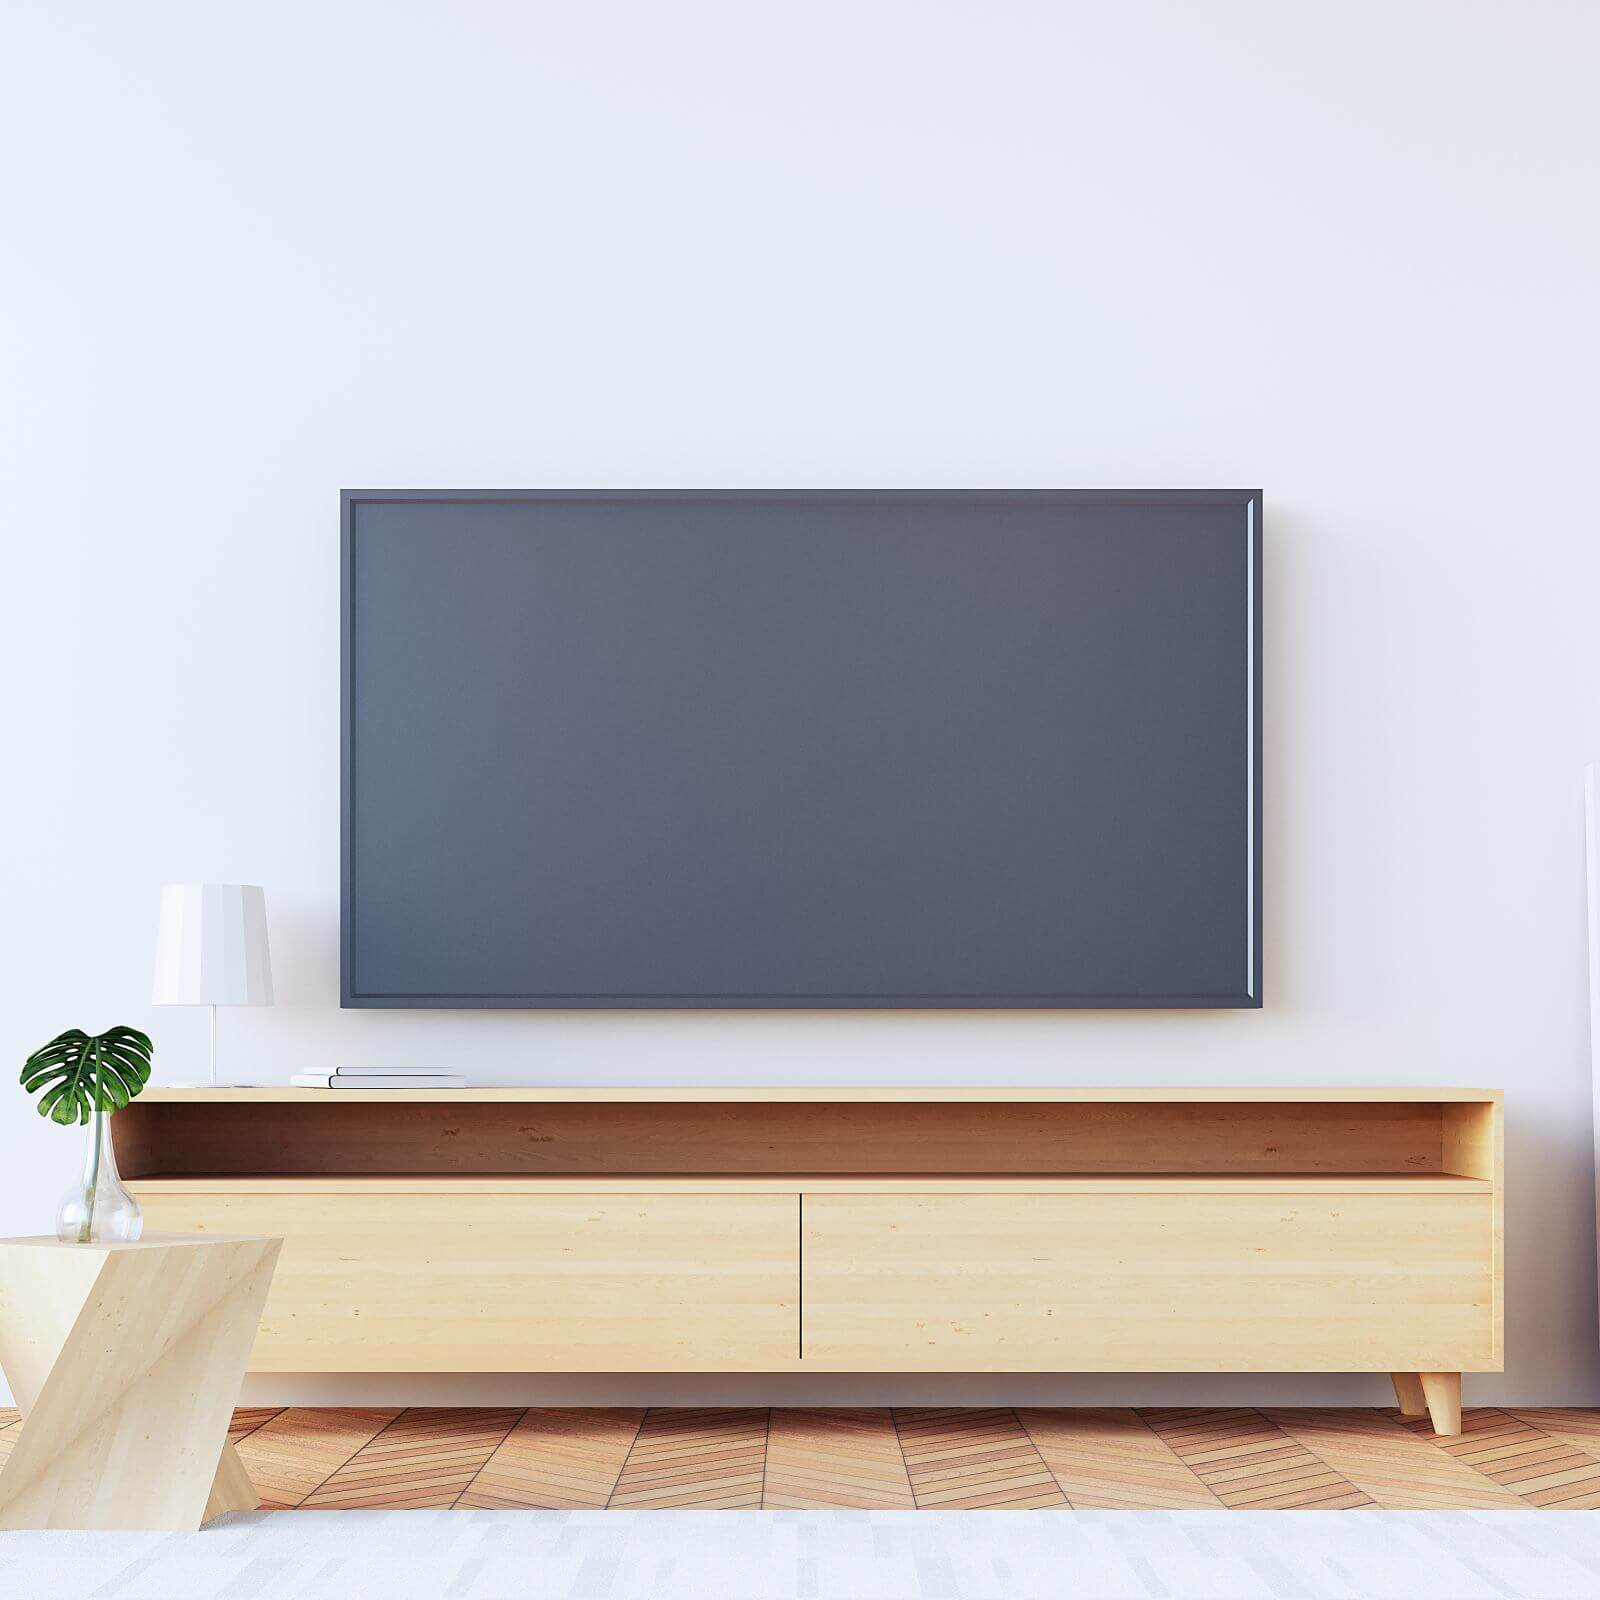 tv in living room / 3d rendering